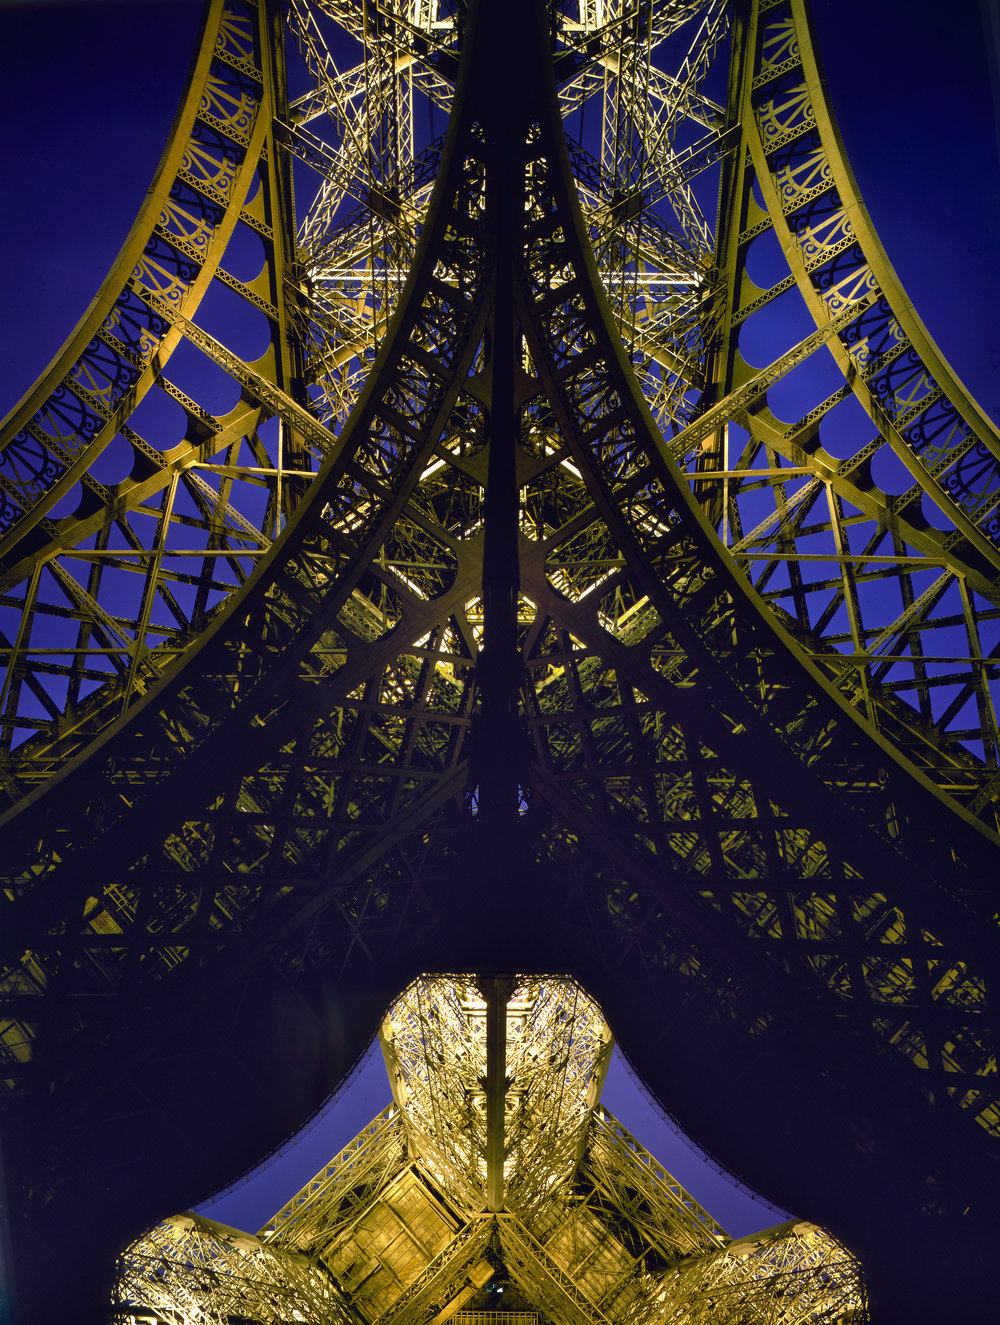 Tour Eiffel III - Paris (2002)